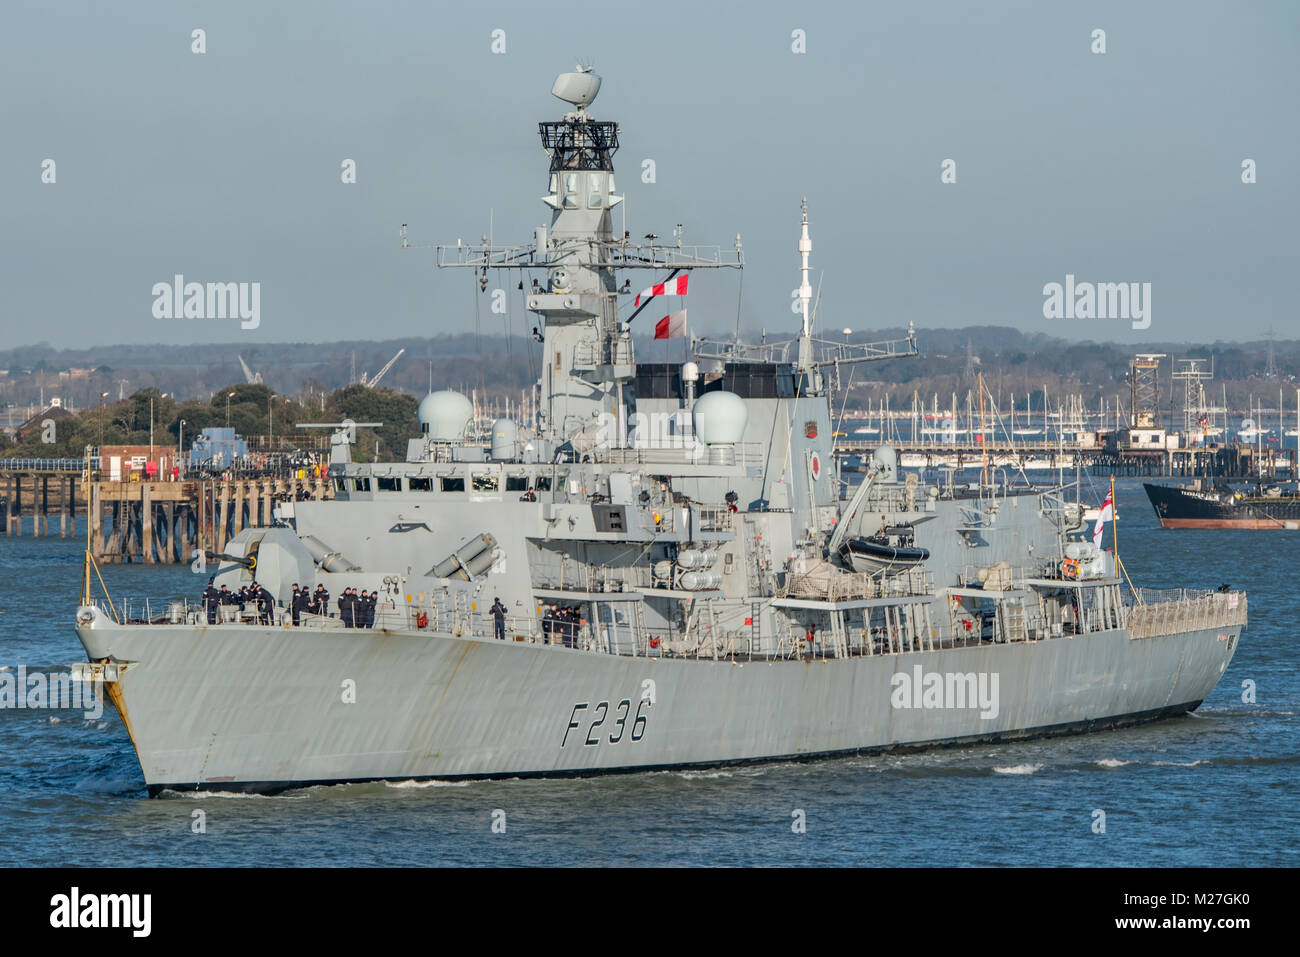 The British Royal Navy Type 23 Frigate, HMS Montrose, departing from Portsmouth, UK on the 5th February 2018. Stock Photo